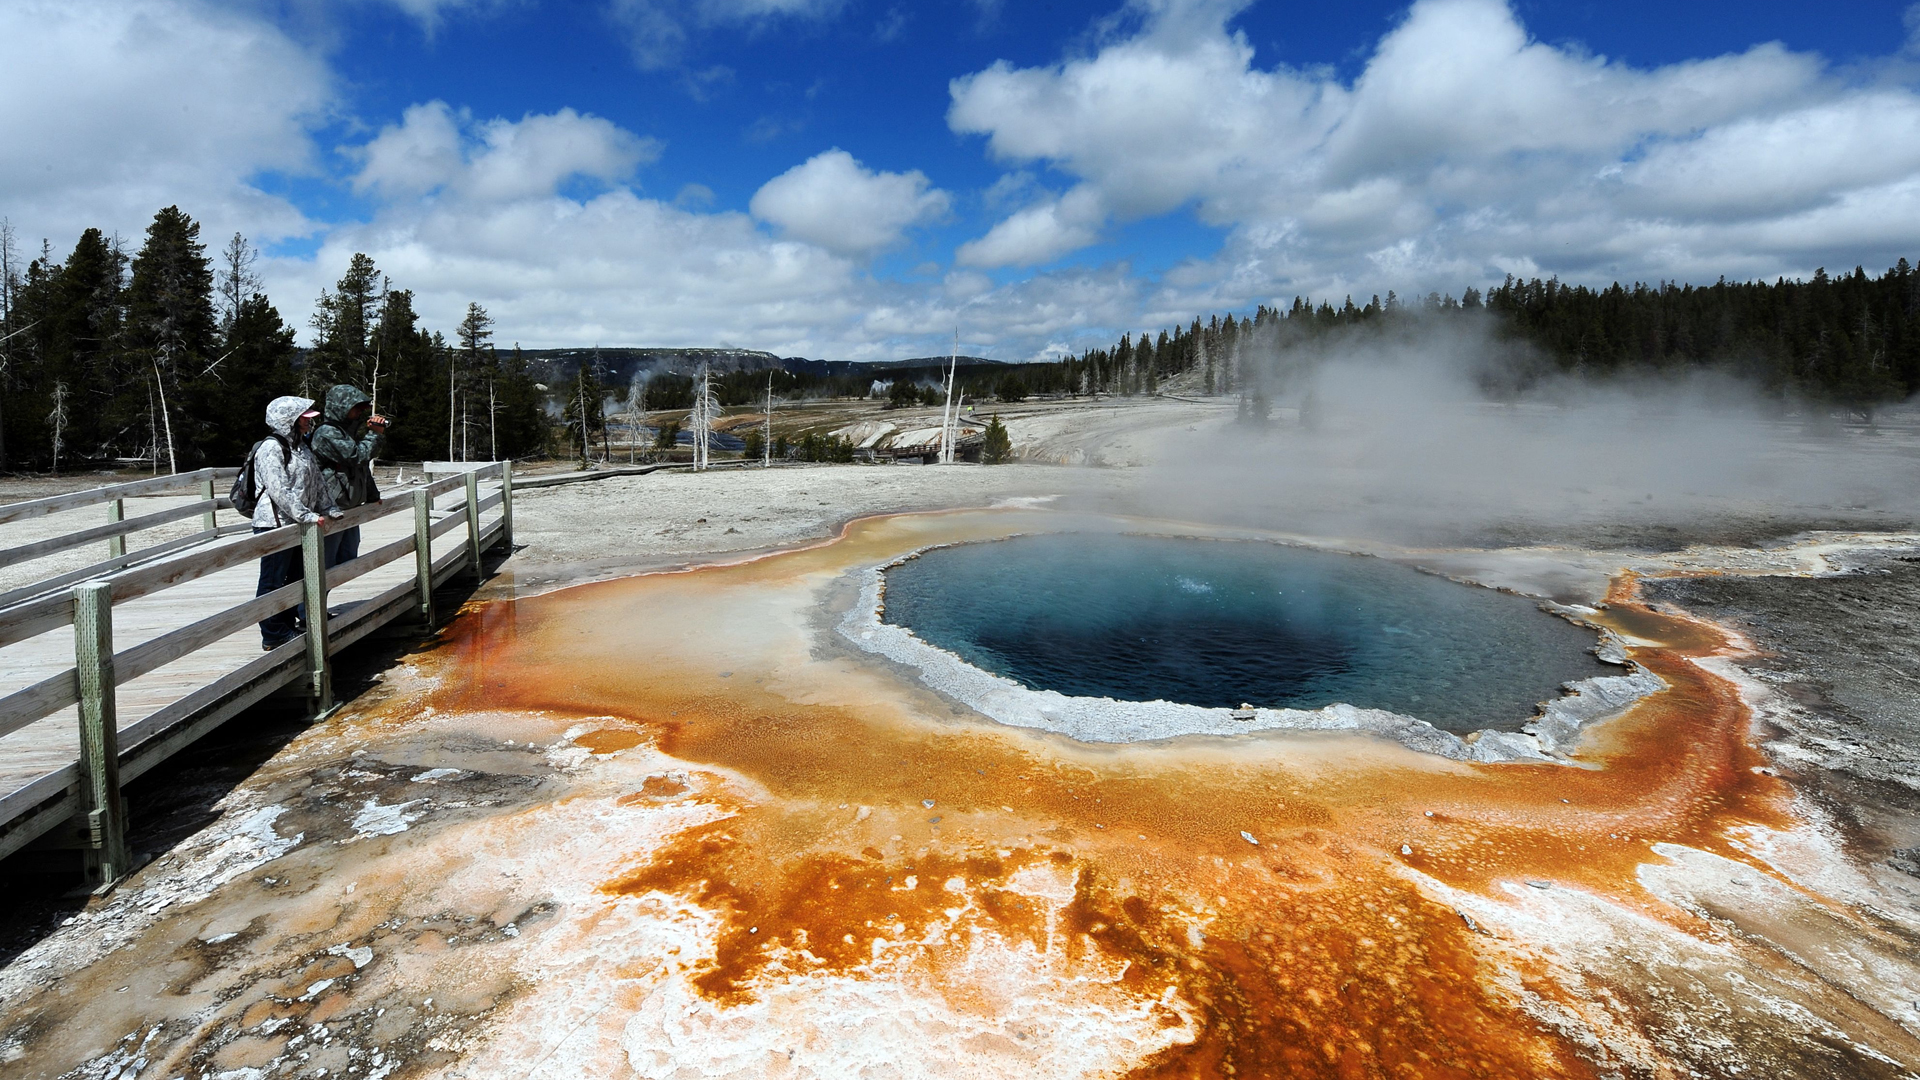 """A view of the """"Crested Pool"""" hot spring in Yellowstone National Park is seen in this photo from June 2, 2011. (Credit: MARK RALSTON/AFP/Getty Images)"""